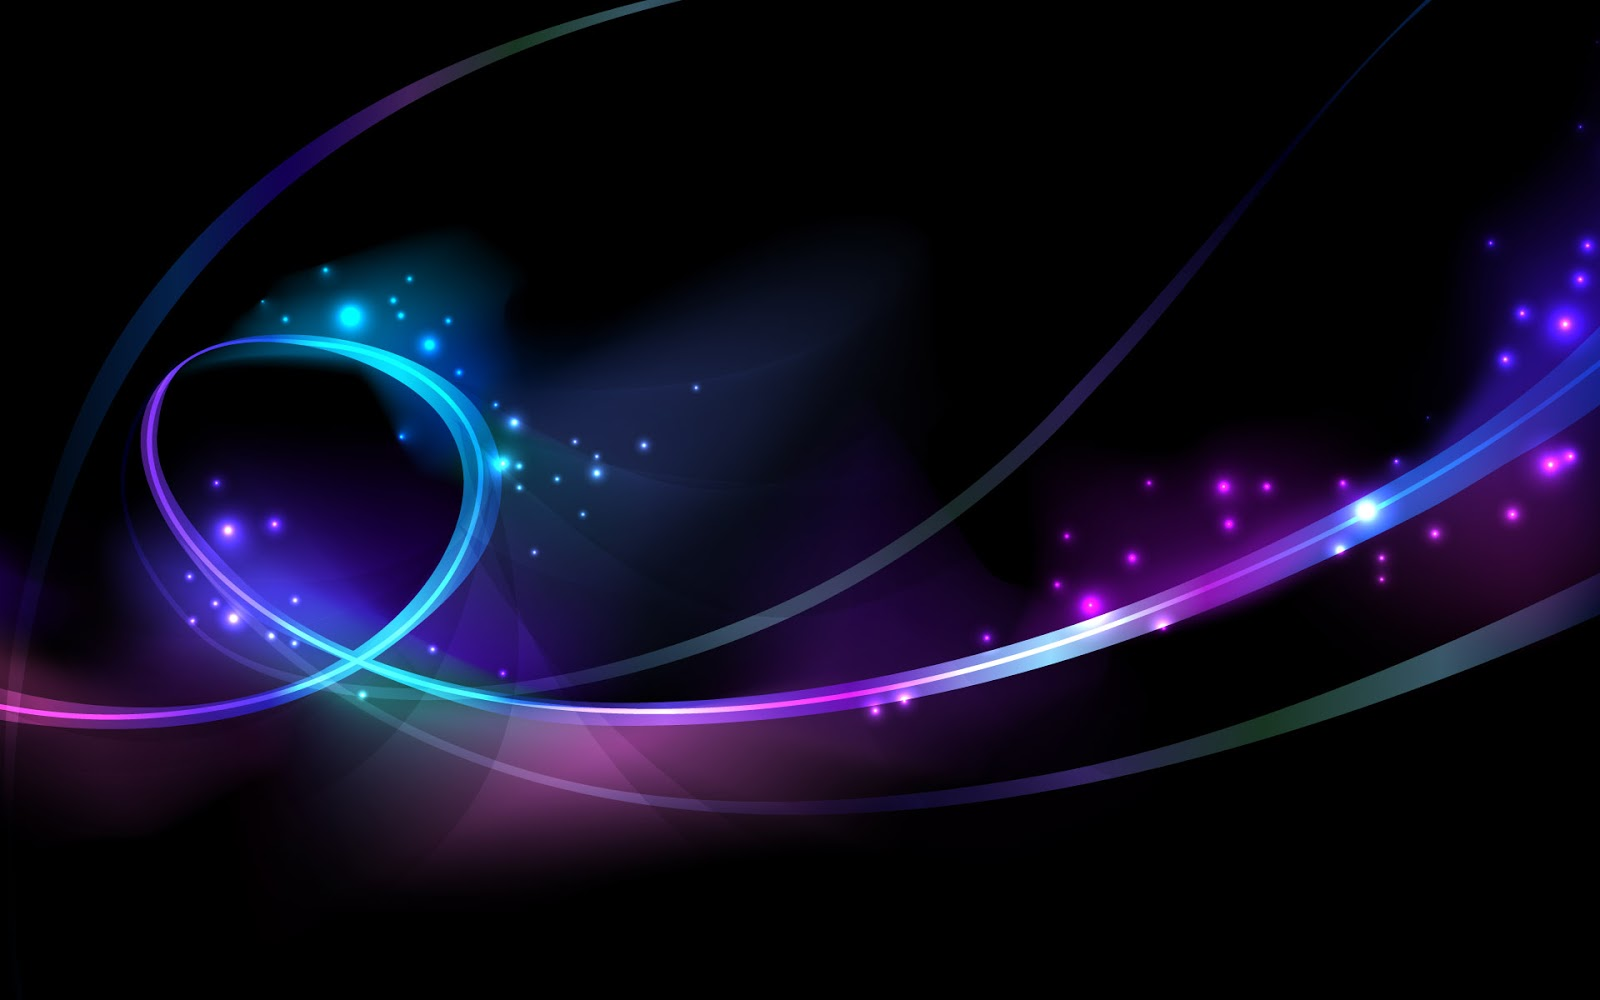 Cool Wallpapers HD HD Wallpapers Backgrounds Photos Pictures 1600x1000